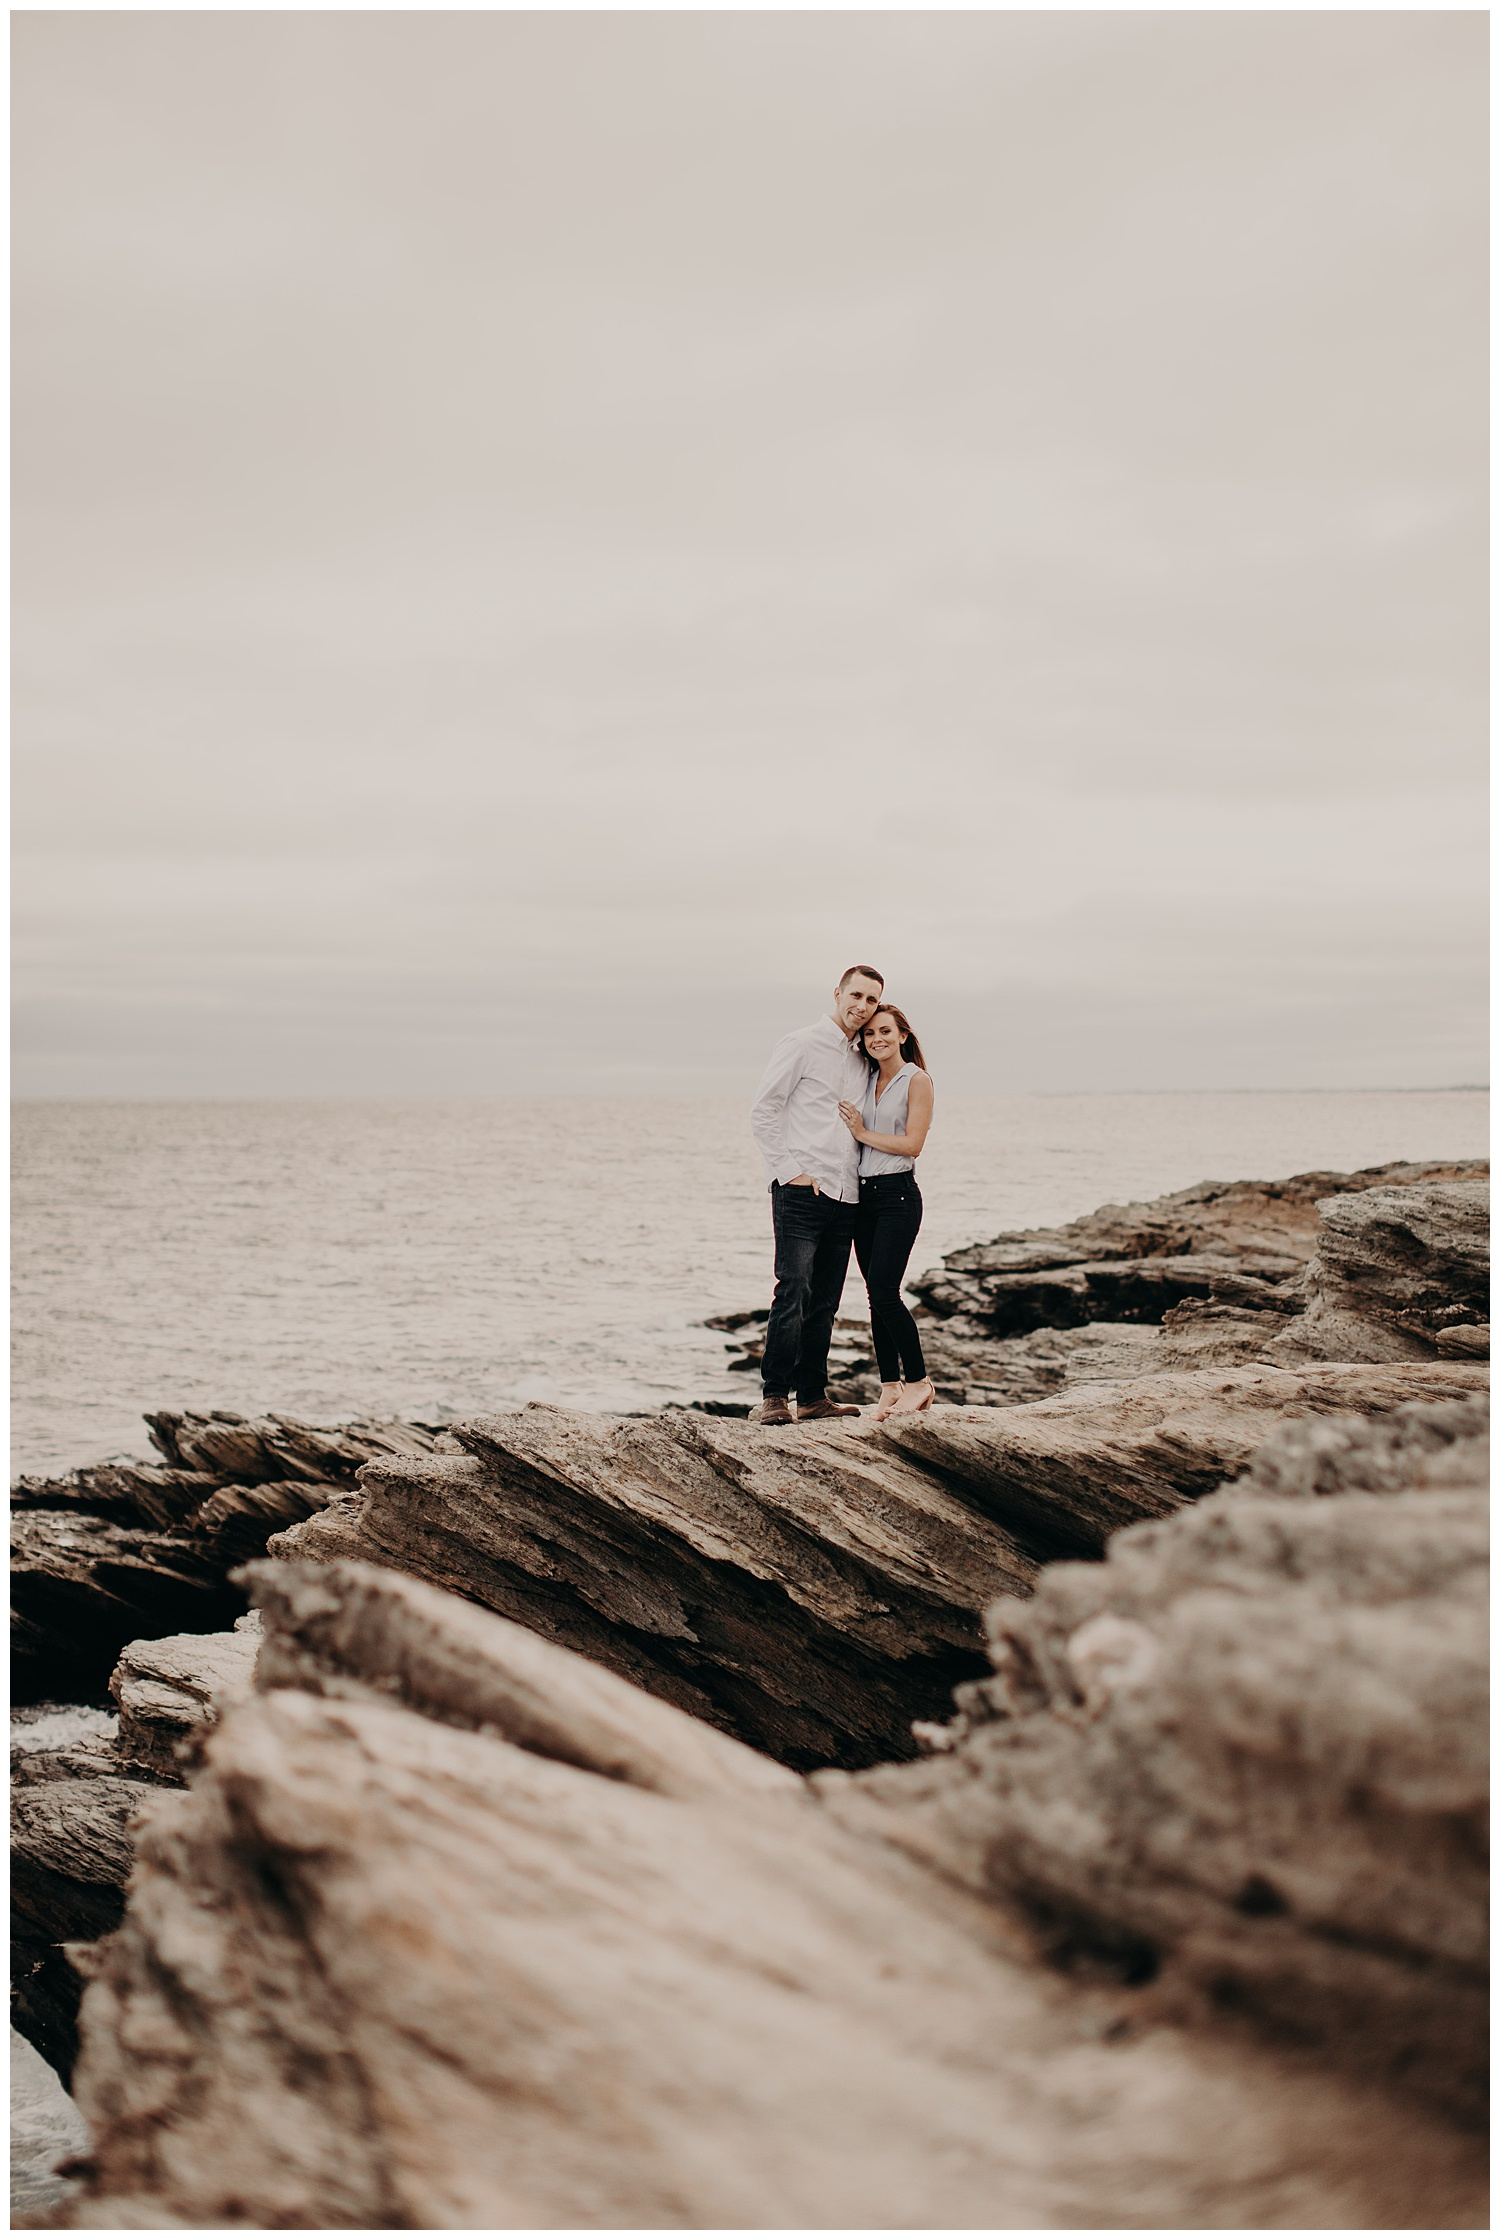 Dan_Sunni_Beavertail_Point_Engagement_Session_007.jpeg